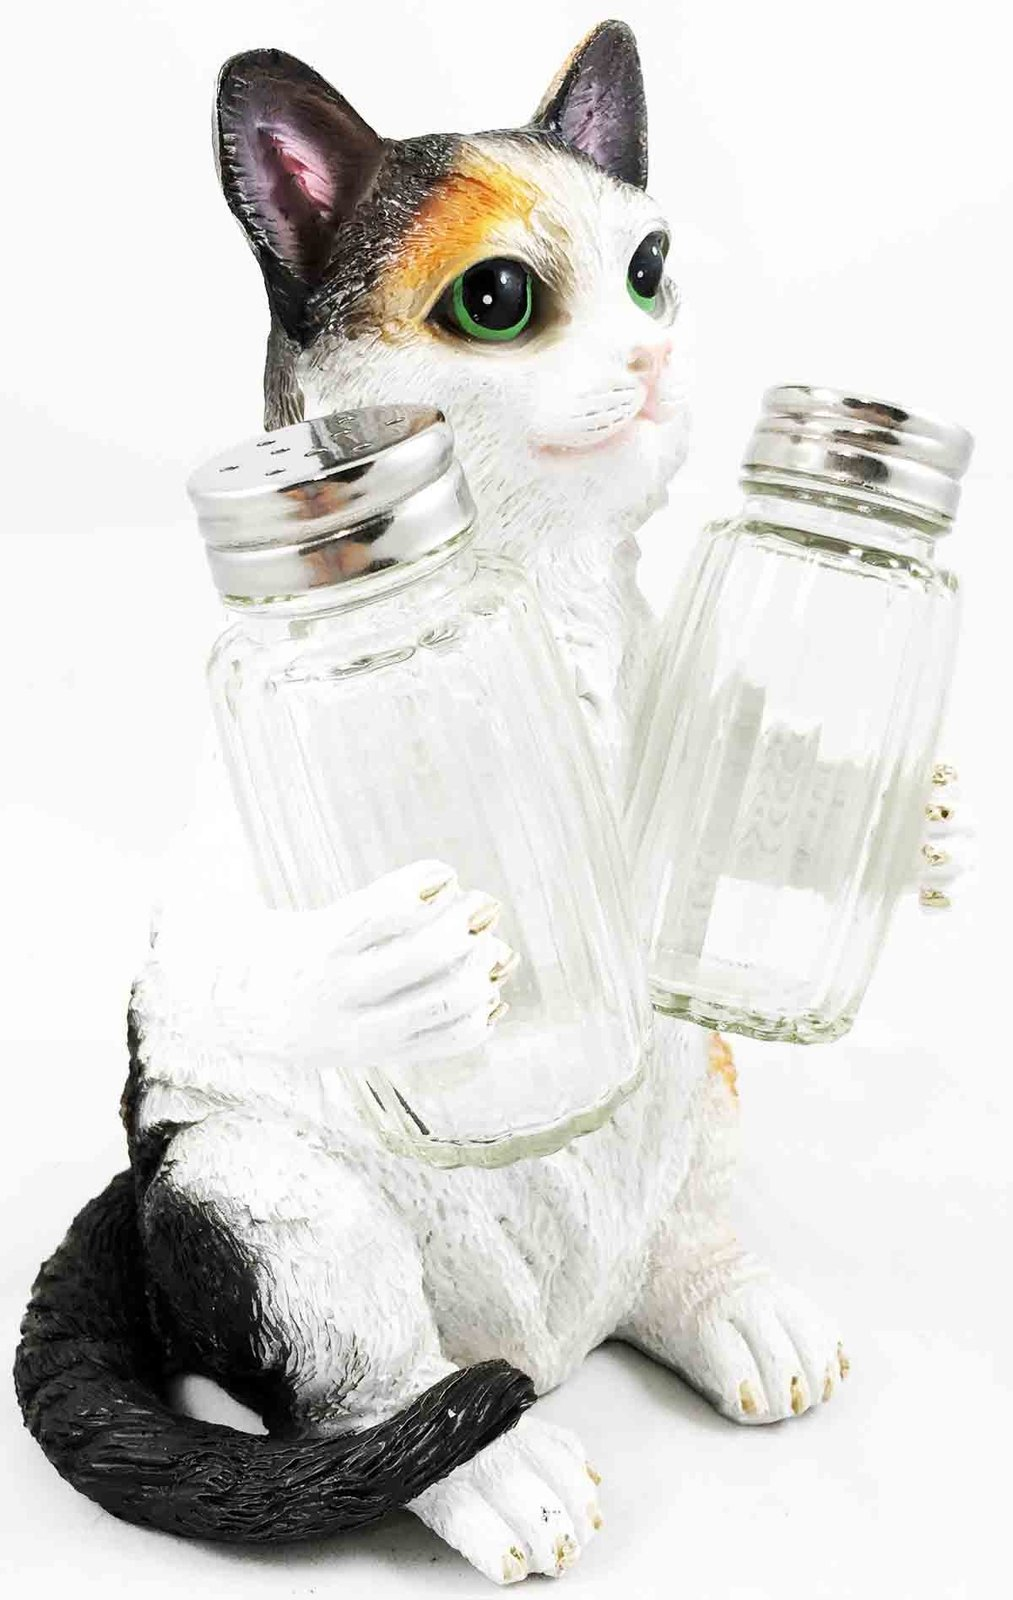 American Favorite Pet Playful Calico Cute Kitty Cat Figurine Salt Pepper Shakers